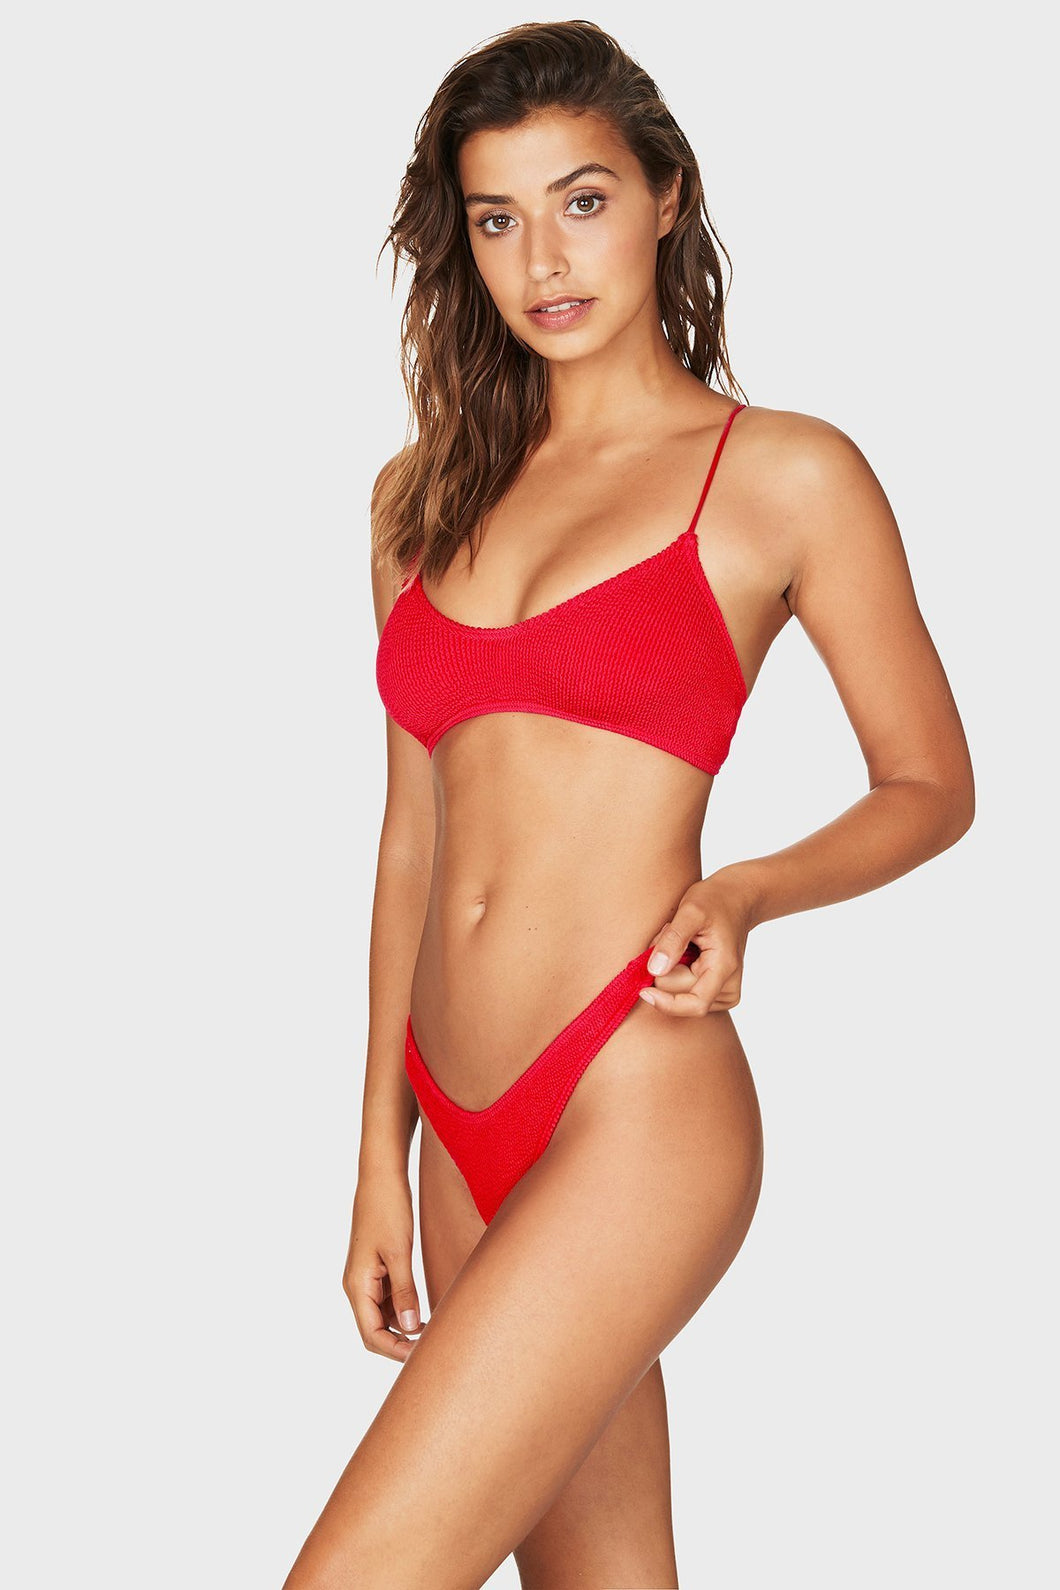 Bound Swimwear - The Selena Bikini Top - Baywatch Red